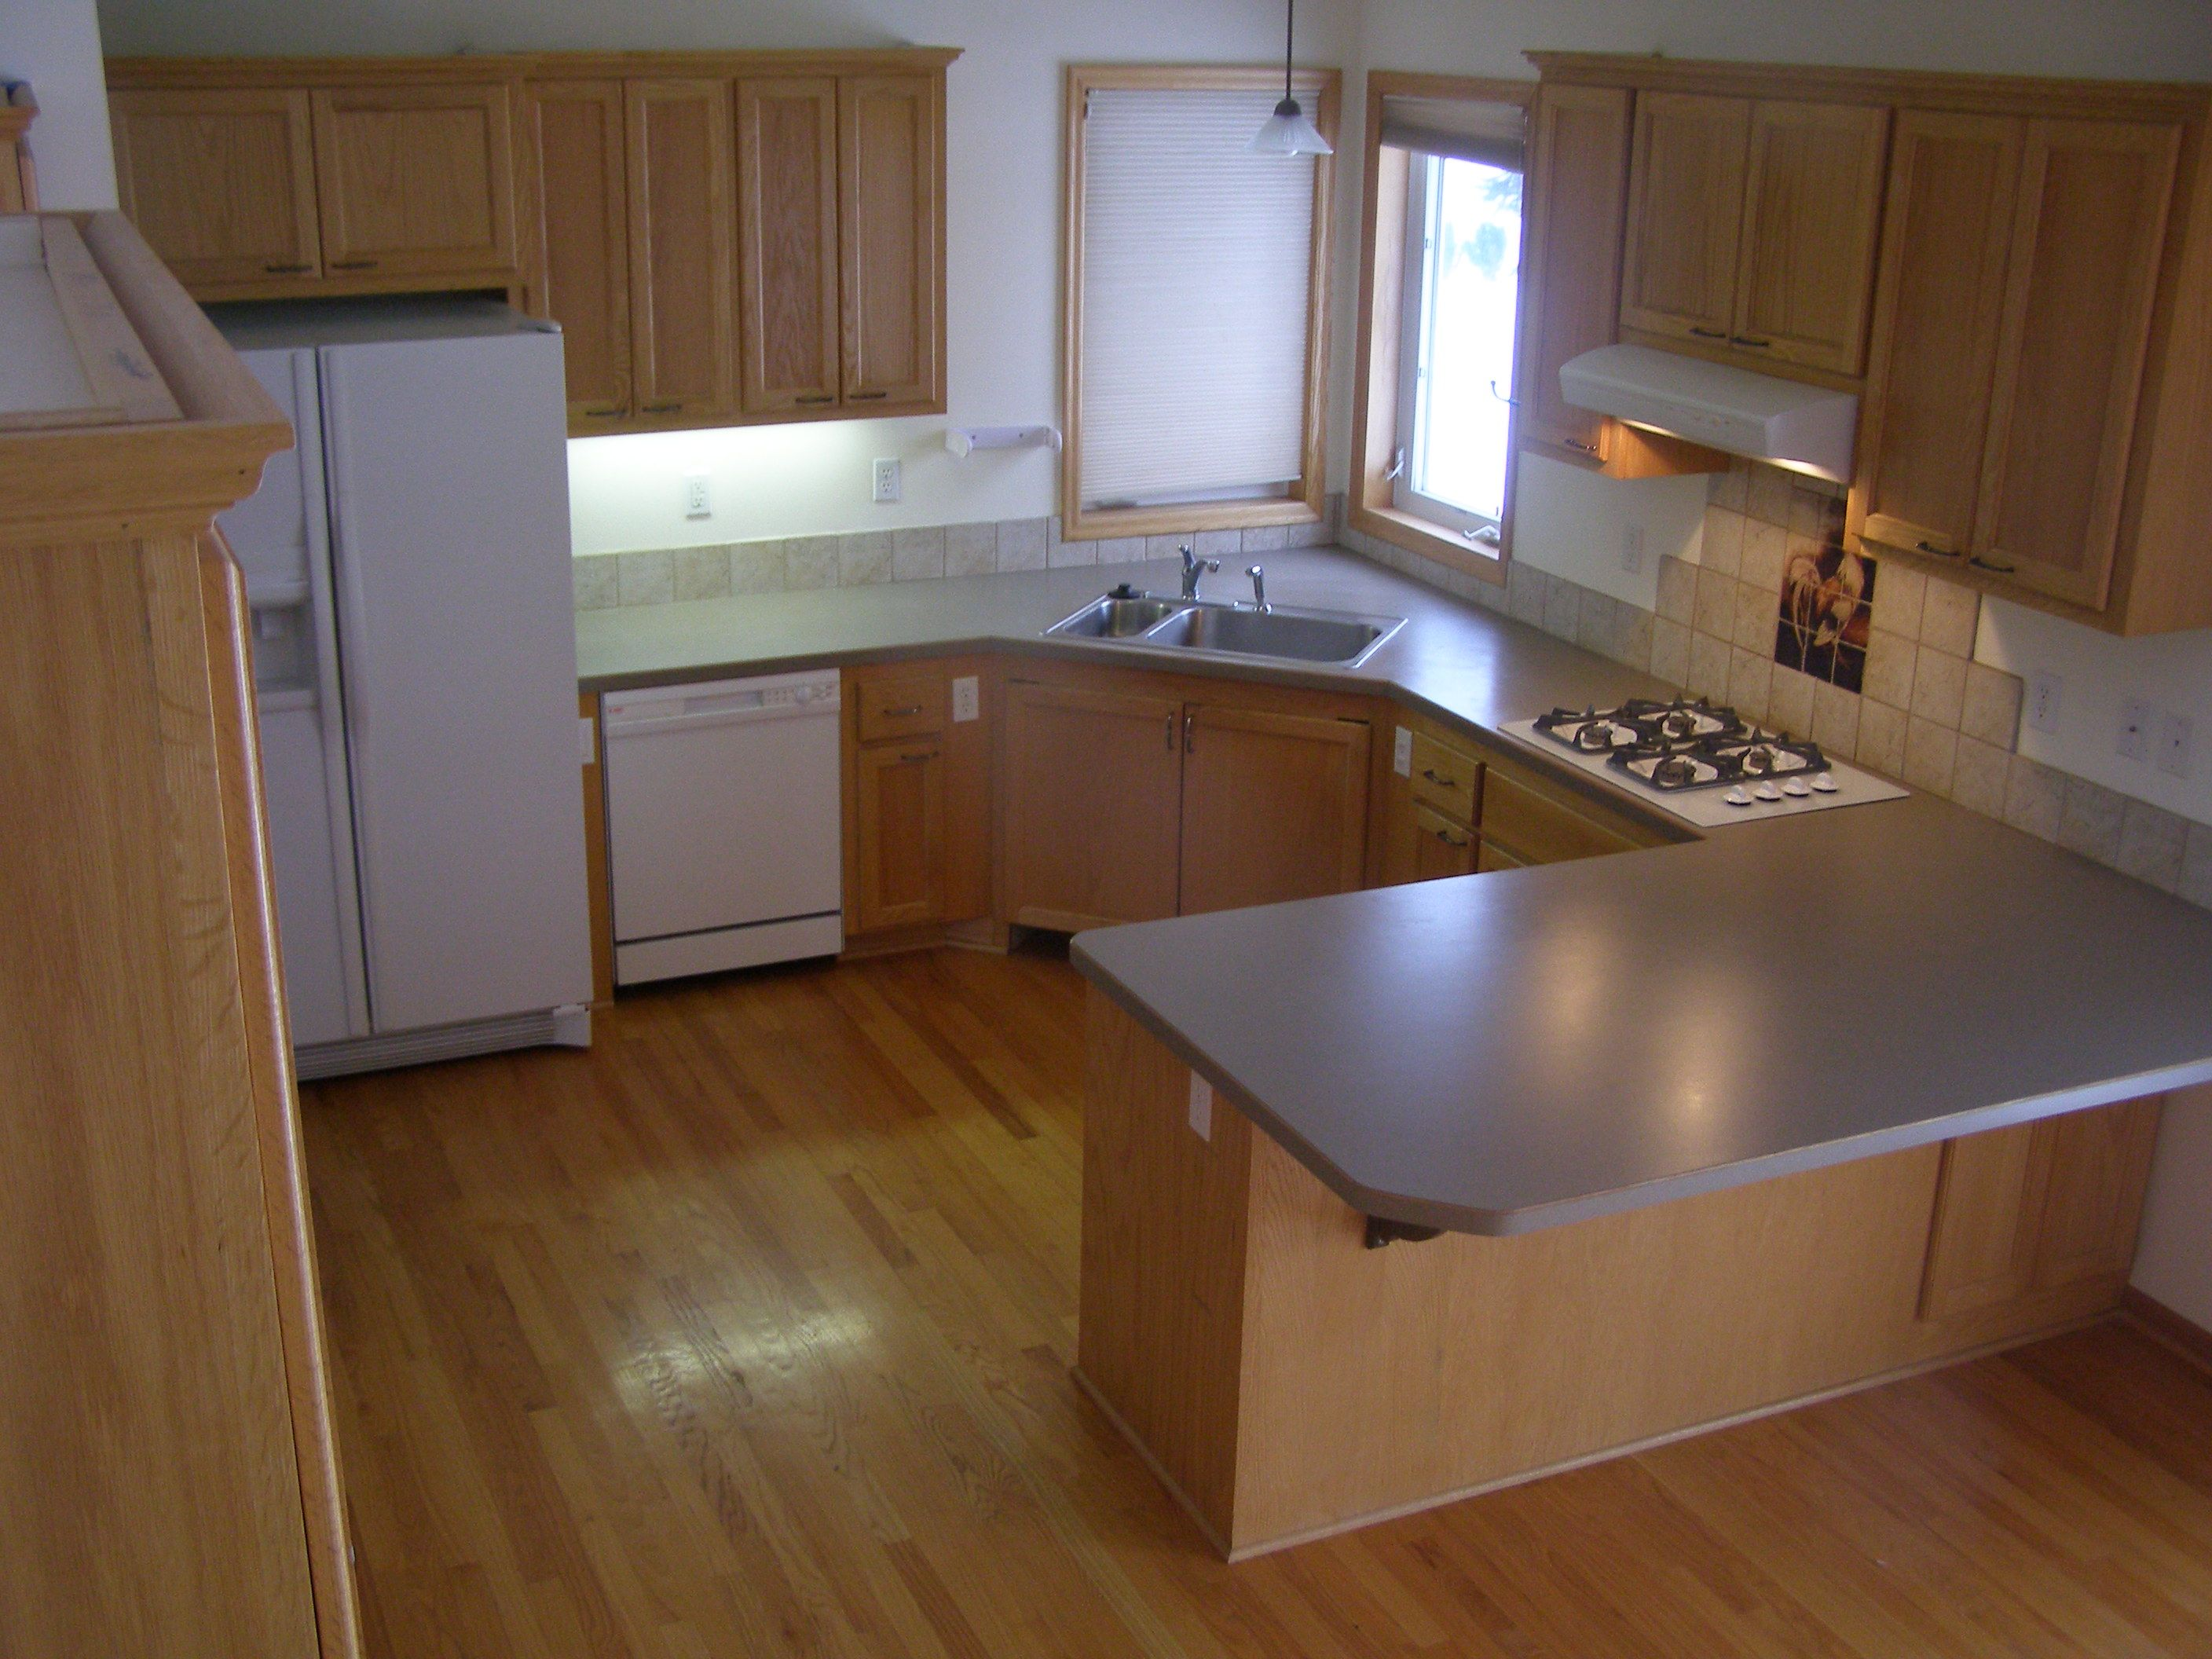 Universal Design Kitchen Cabinets Universal Design Kitchen With Large Overhang 34 Quot High